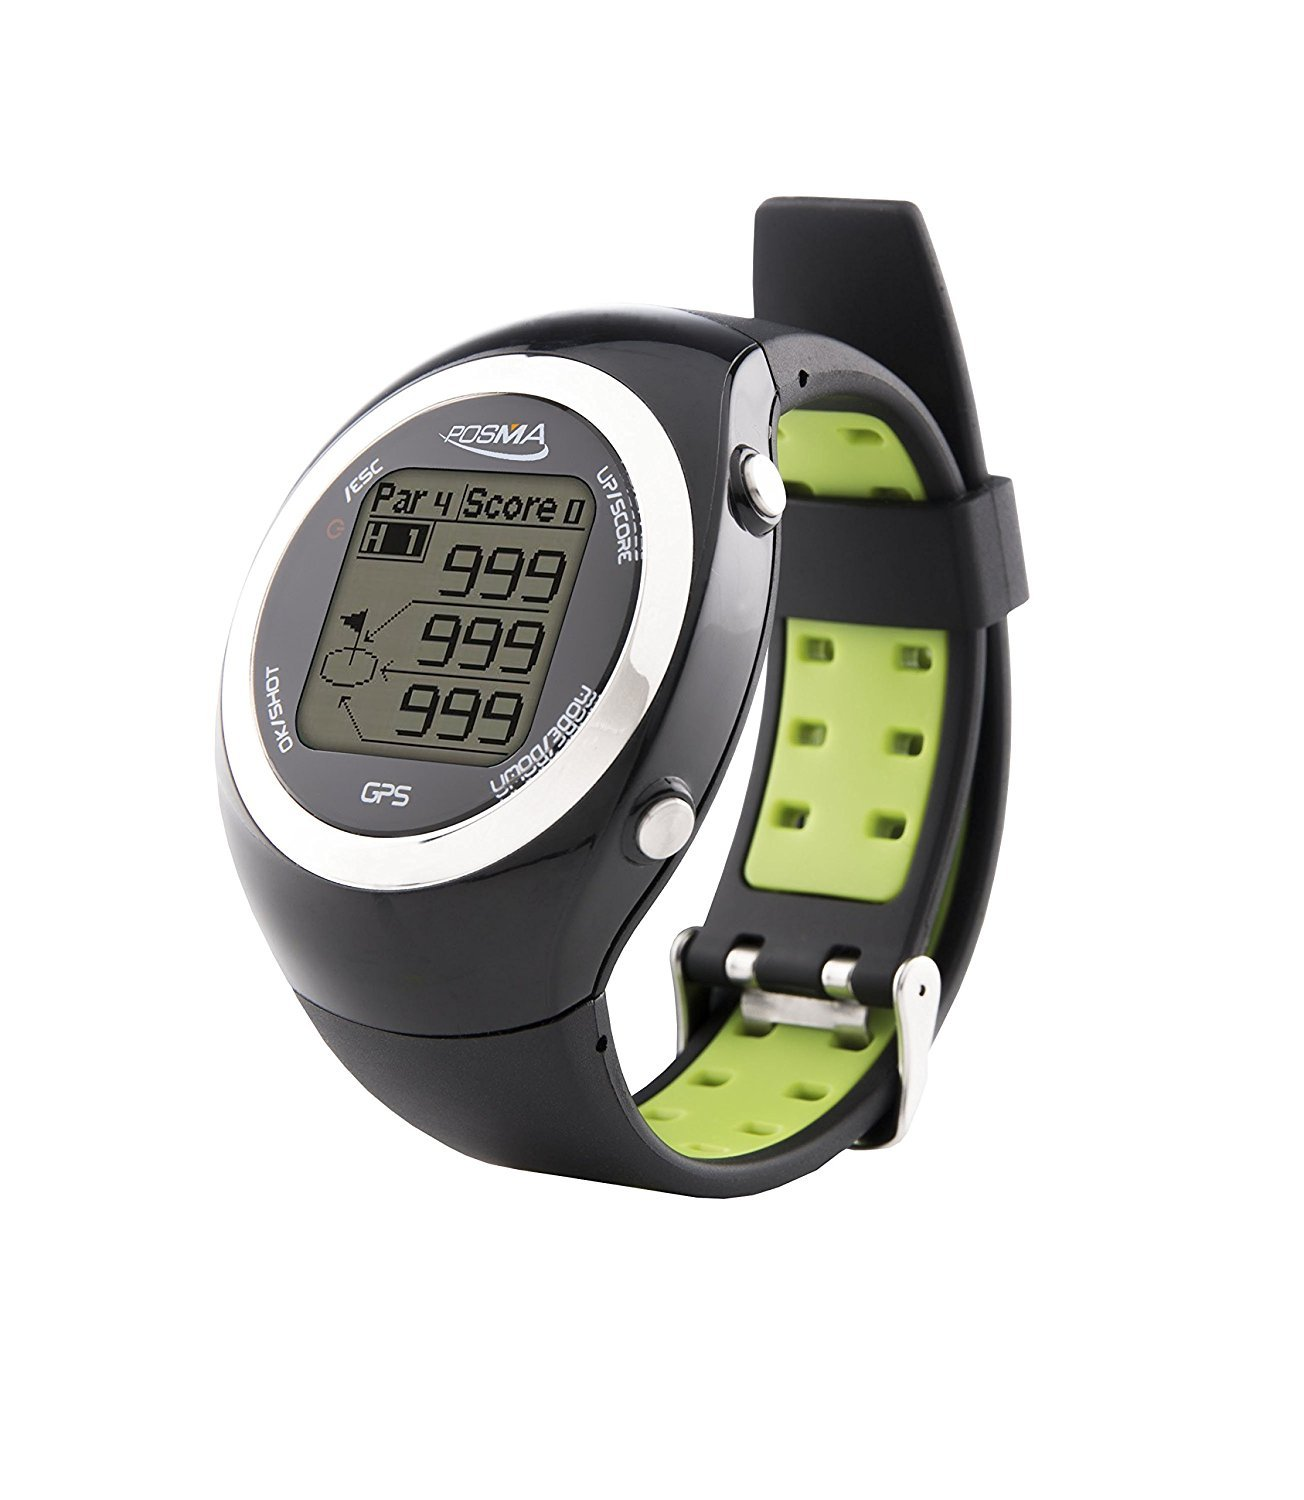 IDS Home POSMA GT2 Golf Trainer + Activity Tracking GPS Golf Watch Range Finder, Preloaded Golf Courses, Global Courses - Green